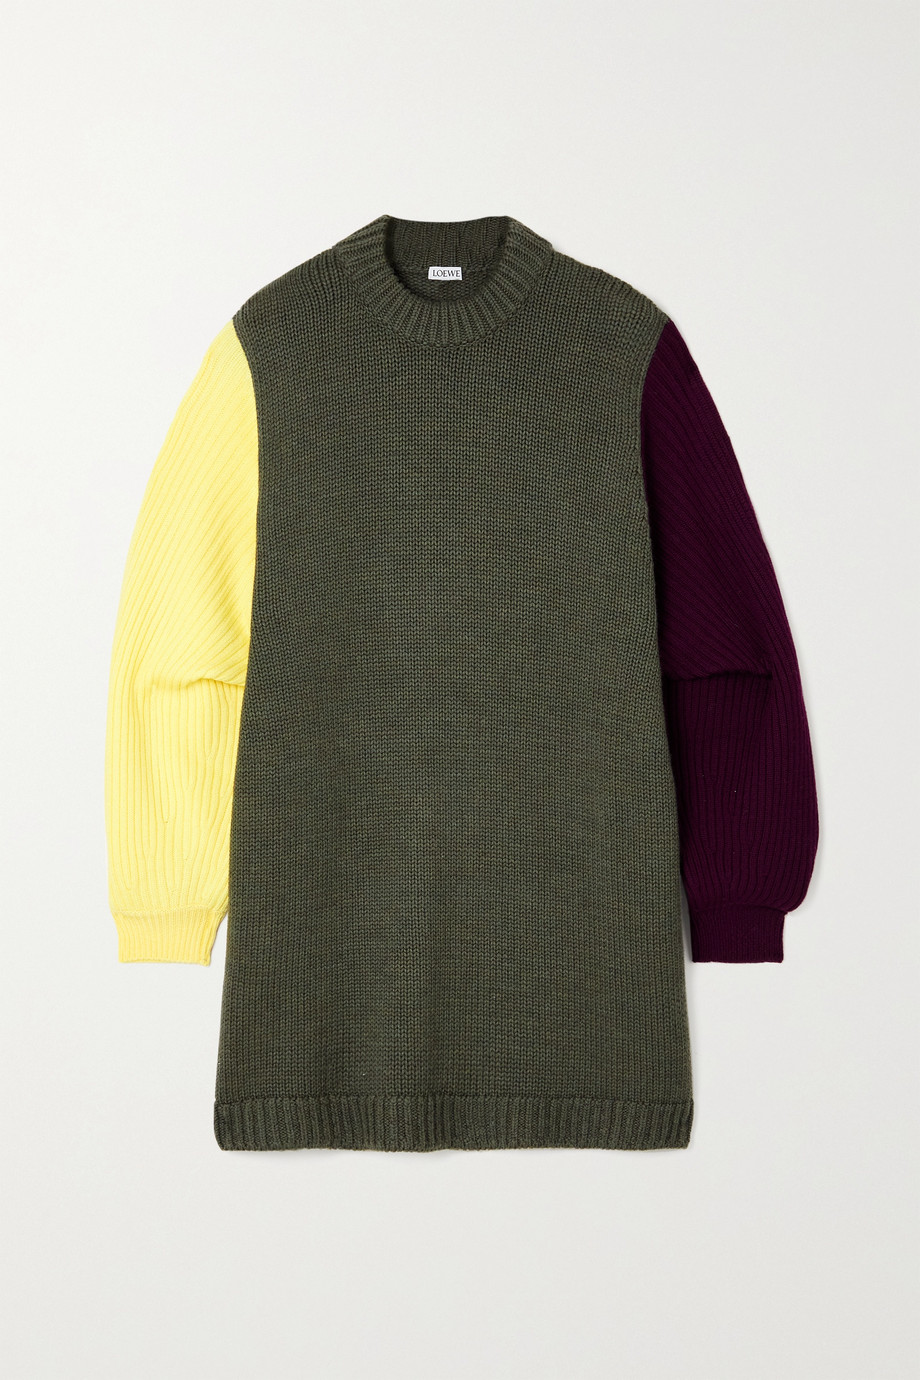 LOEWE Oversized color-block wool sweater